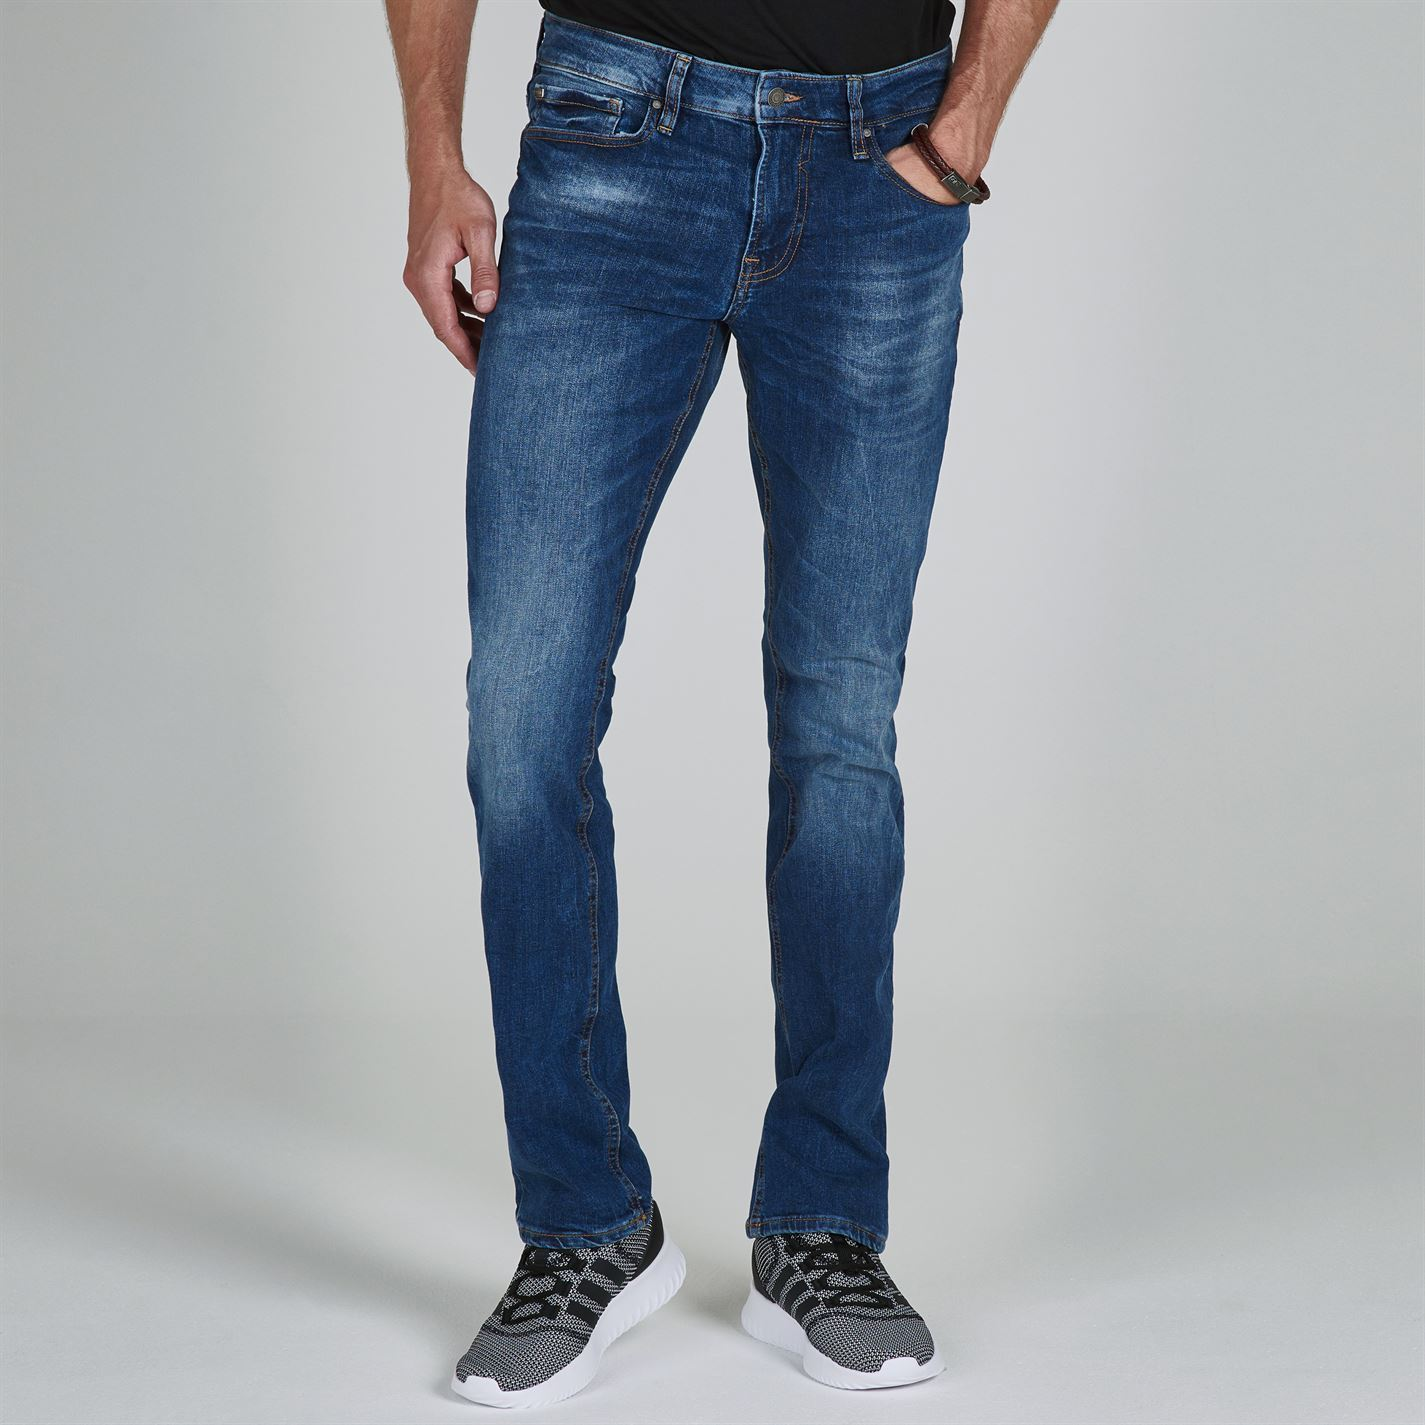 Guess Skinny Jeans Mens Gents Pants Trousers Bottoms Zip Slim Fit